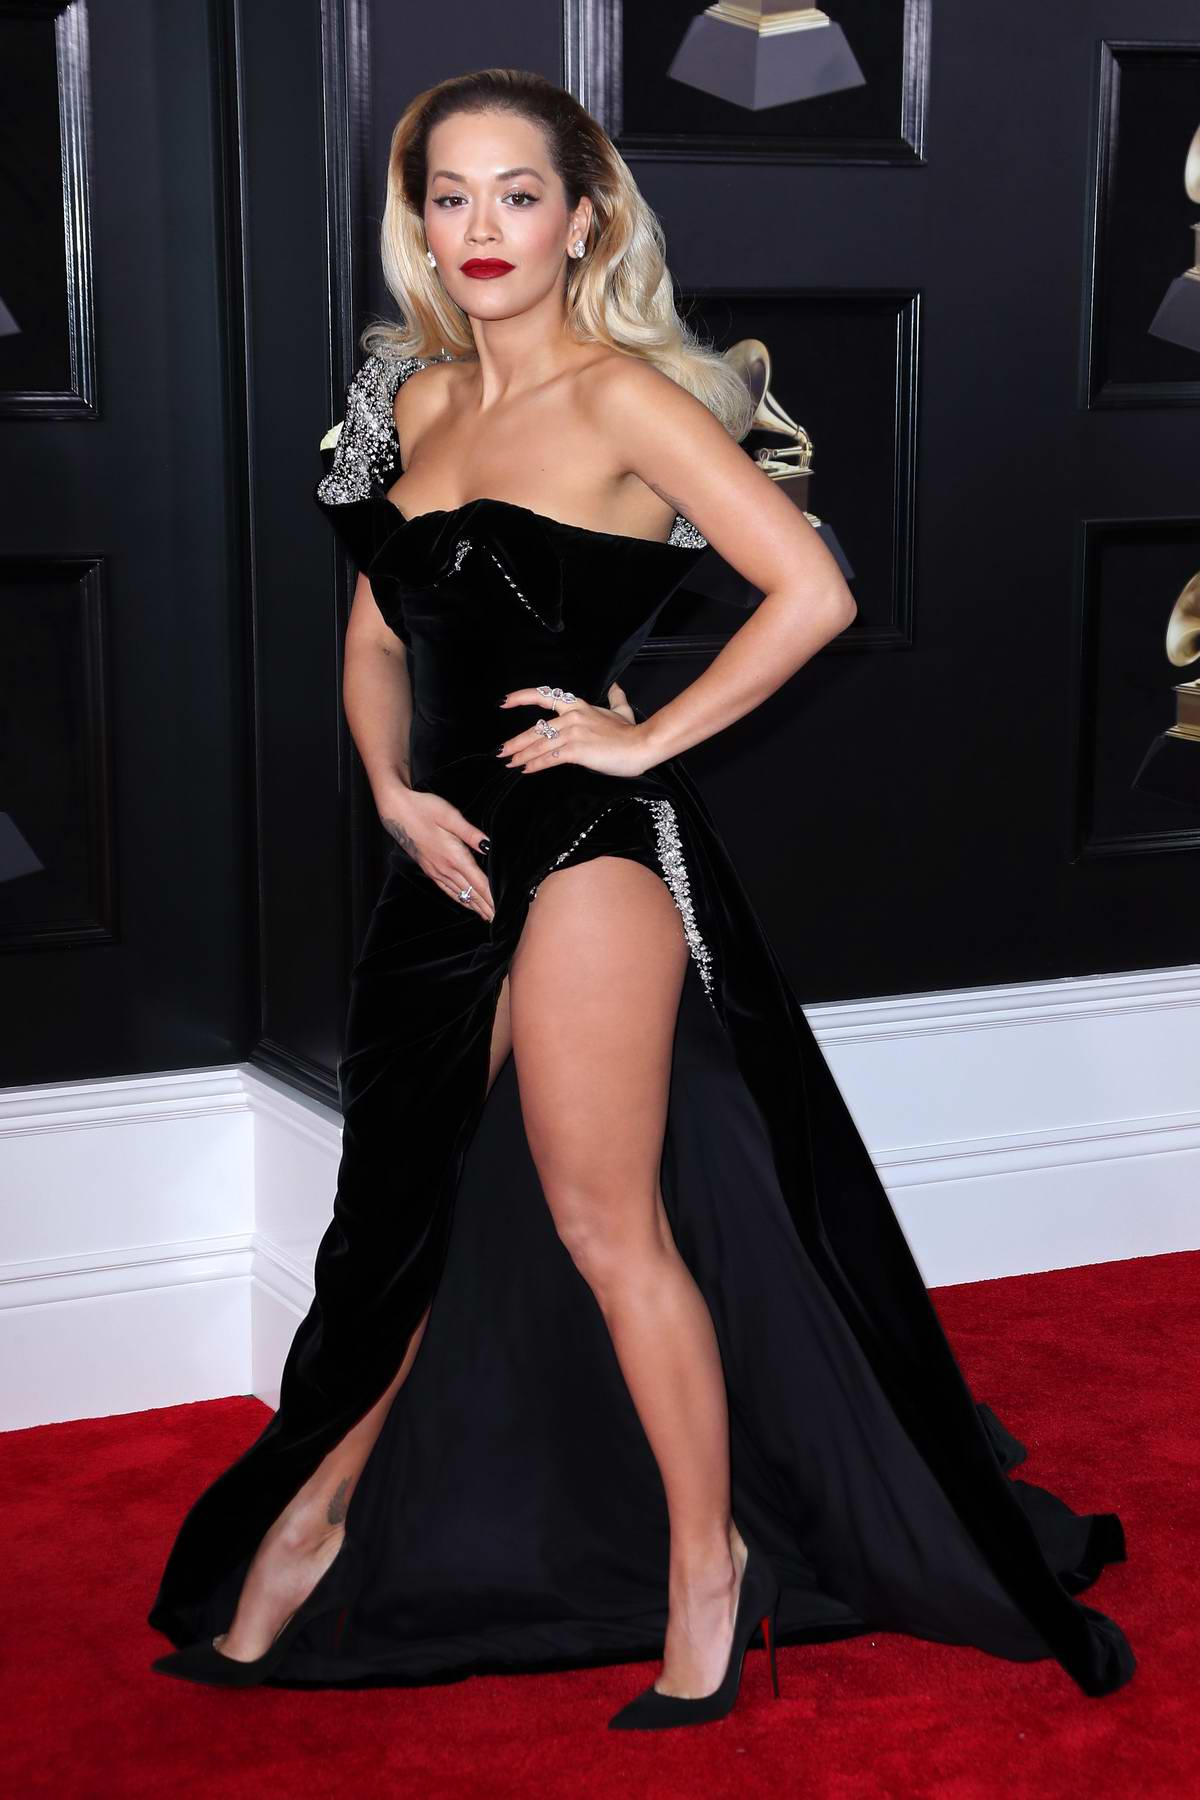 Rita Ora attends the 60th Annual Grammy Awards at Madison Square Garden in New York